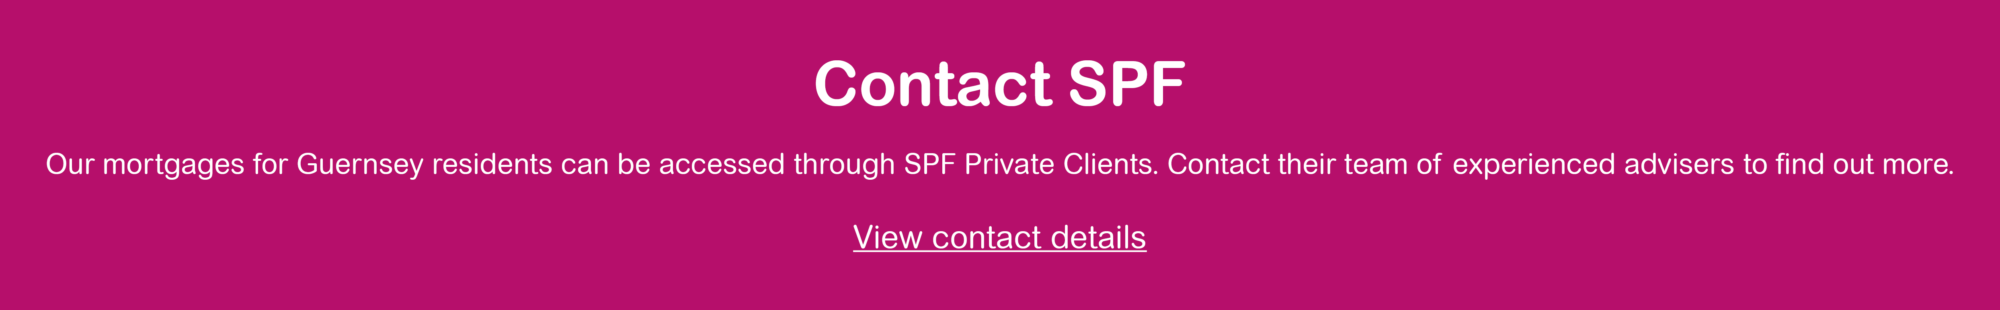 Magenta banner with white text. Contact SPF's team of experienced advisers to find out more about Guernsey mortgages.